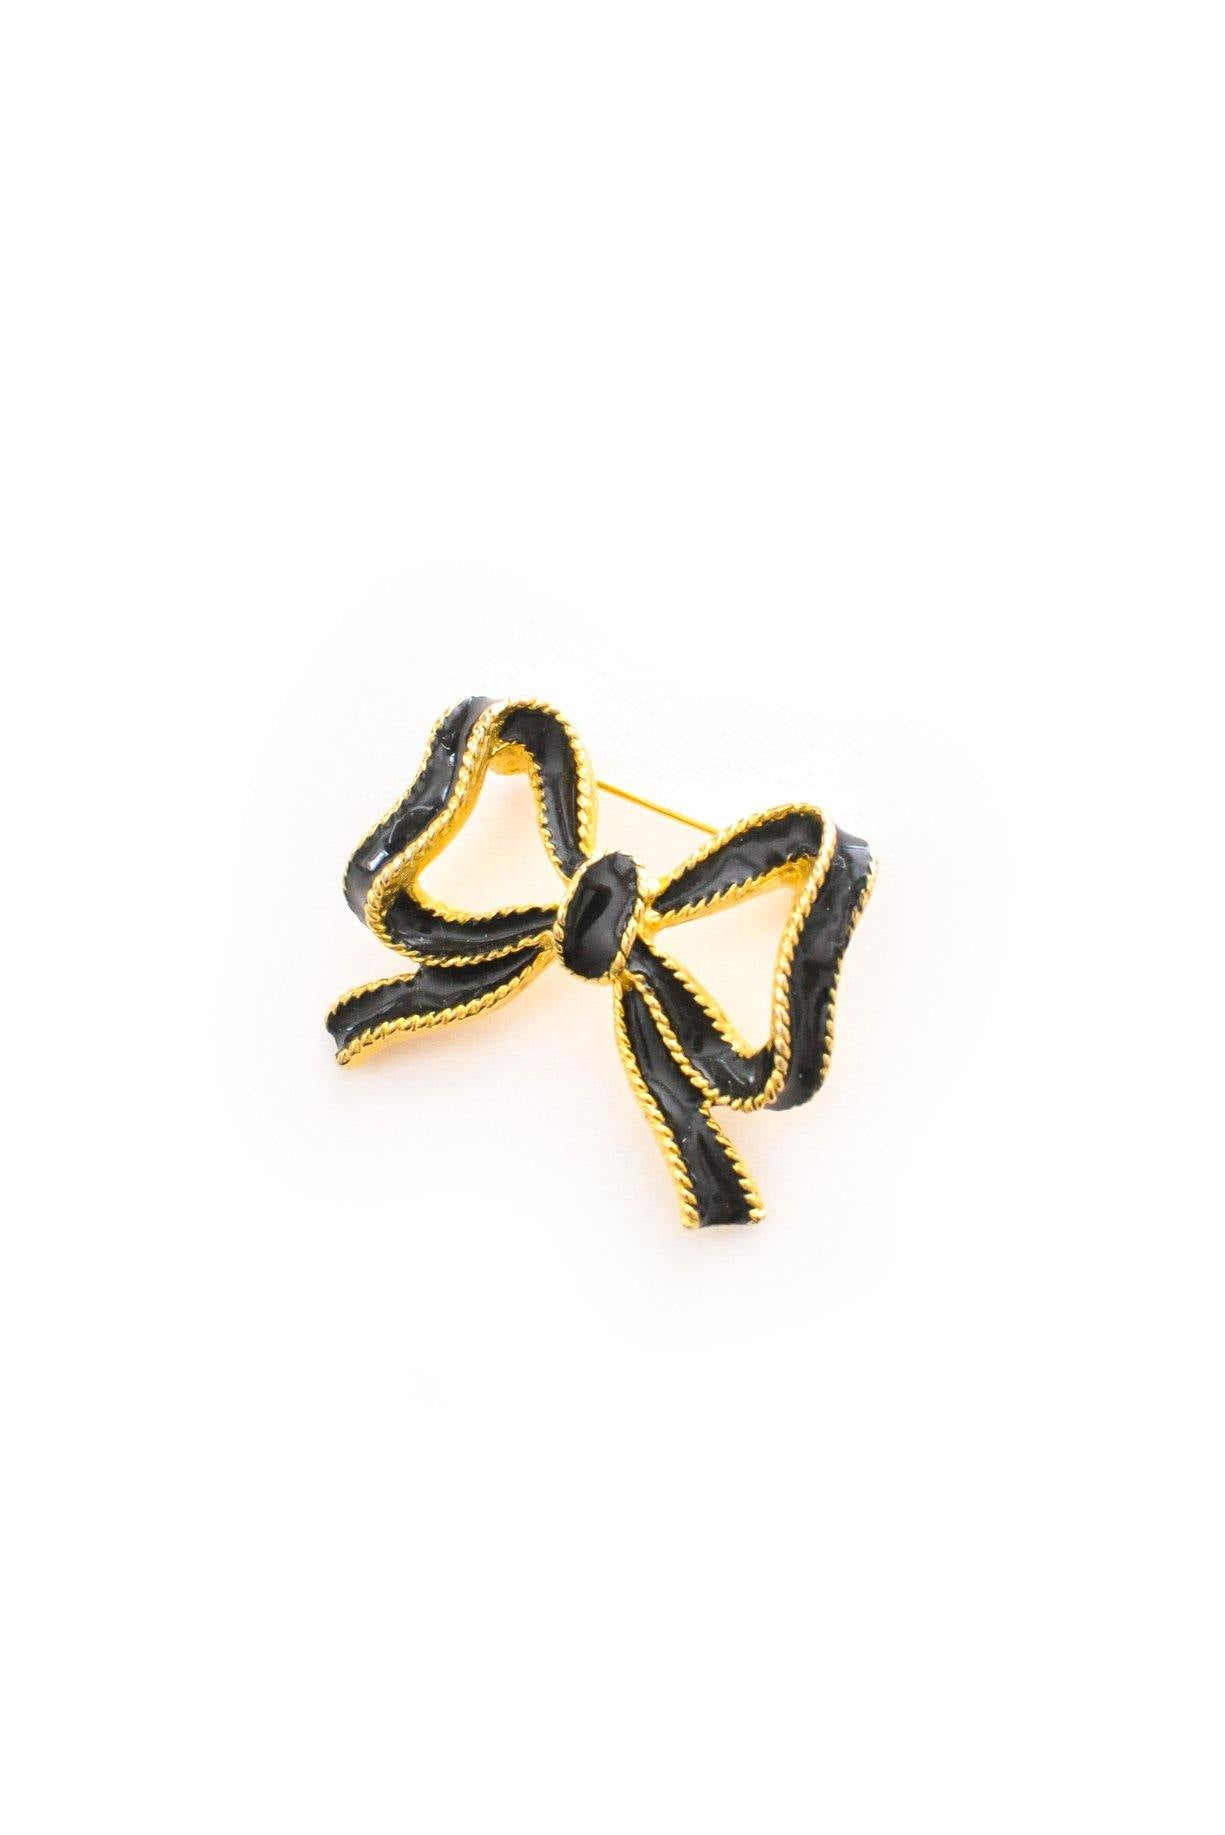 Black enamel bow brooch from Sweet & Spark.